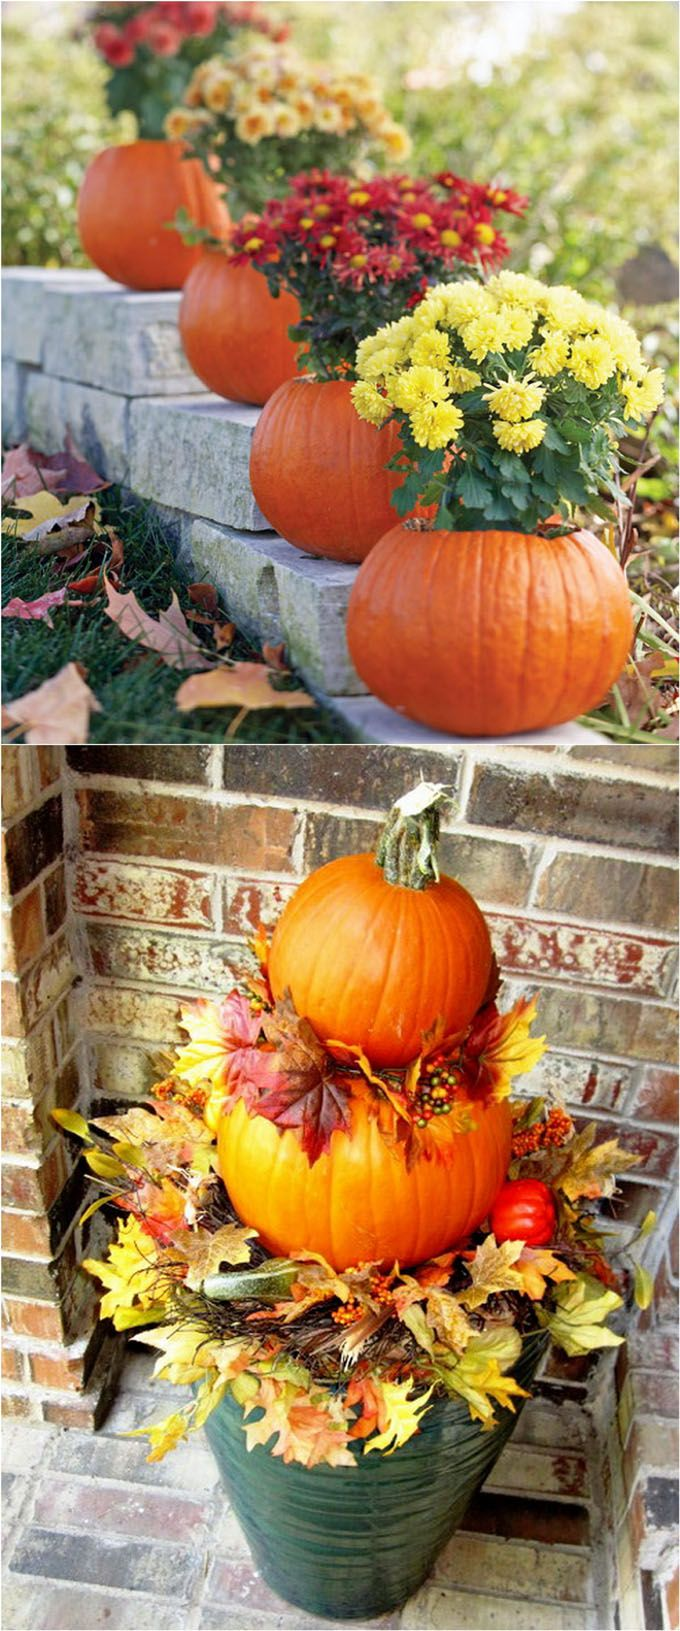 104805 best great gardens ideas images on pinterest Fall outdoor decorating with pumpkins